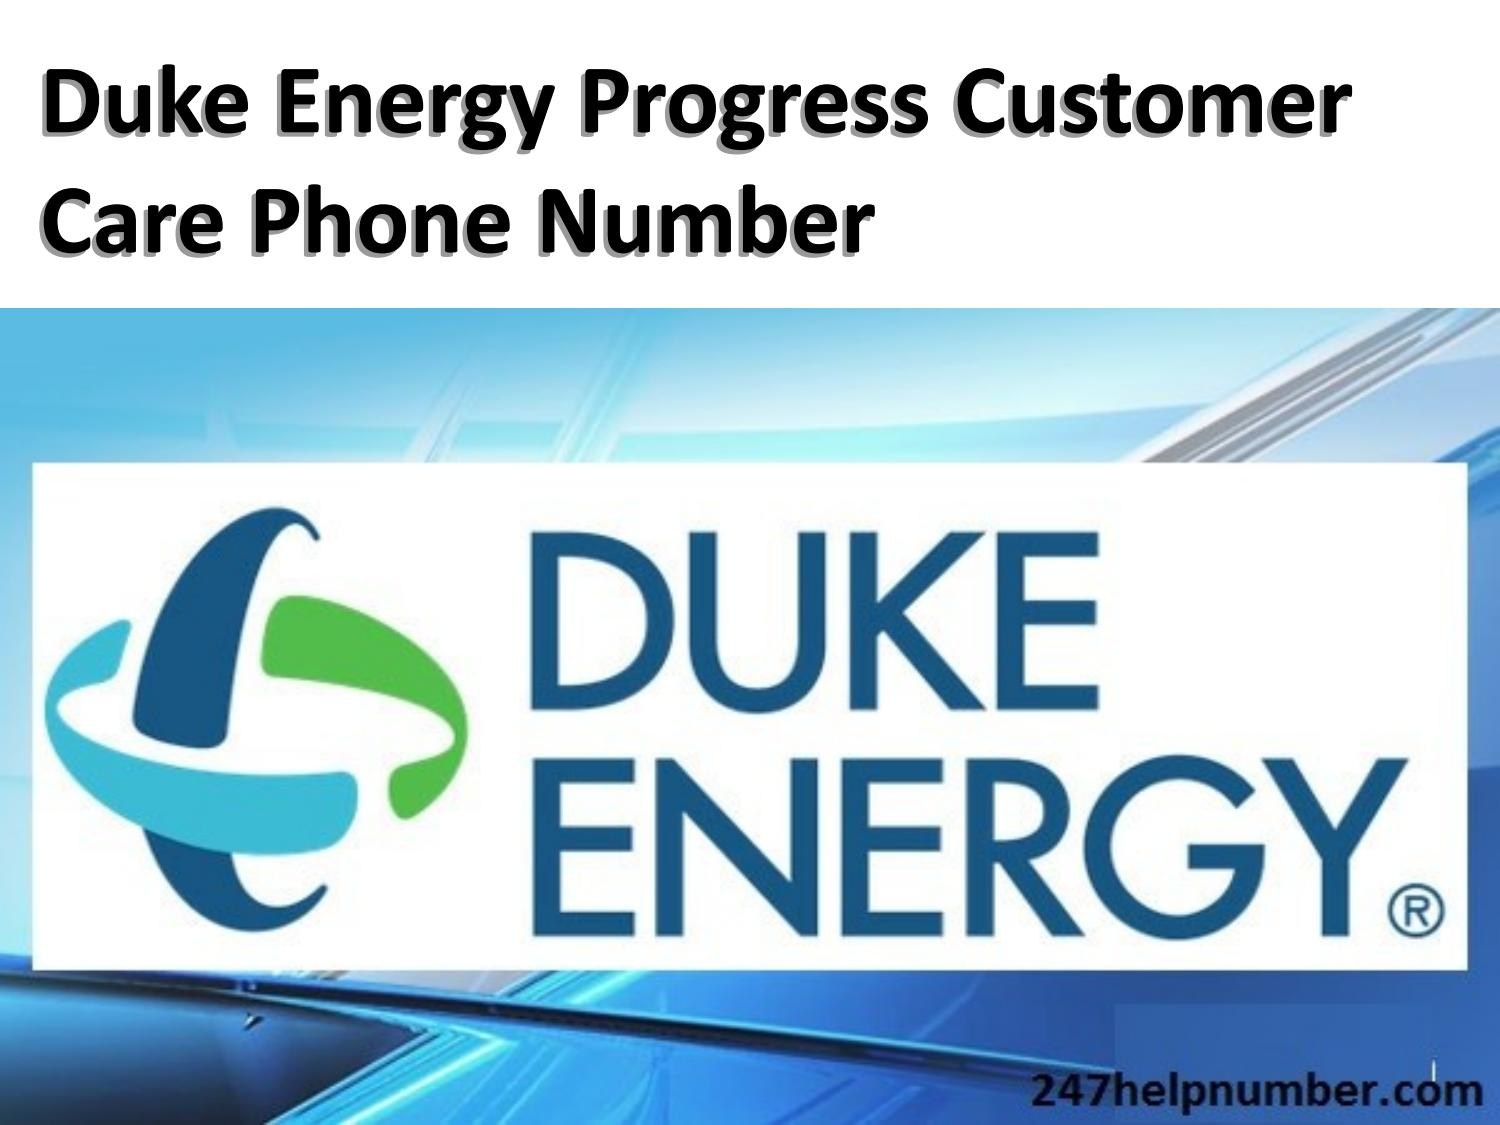 Duke energy customer servic support care toll free phone number by Anna  Huddle - issuu